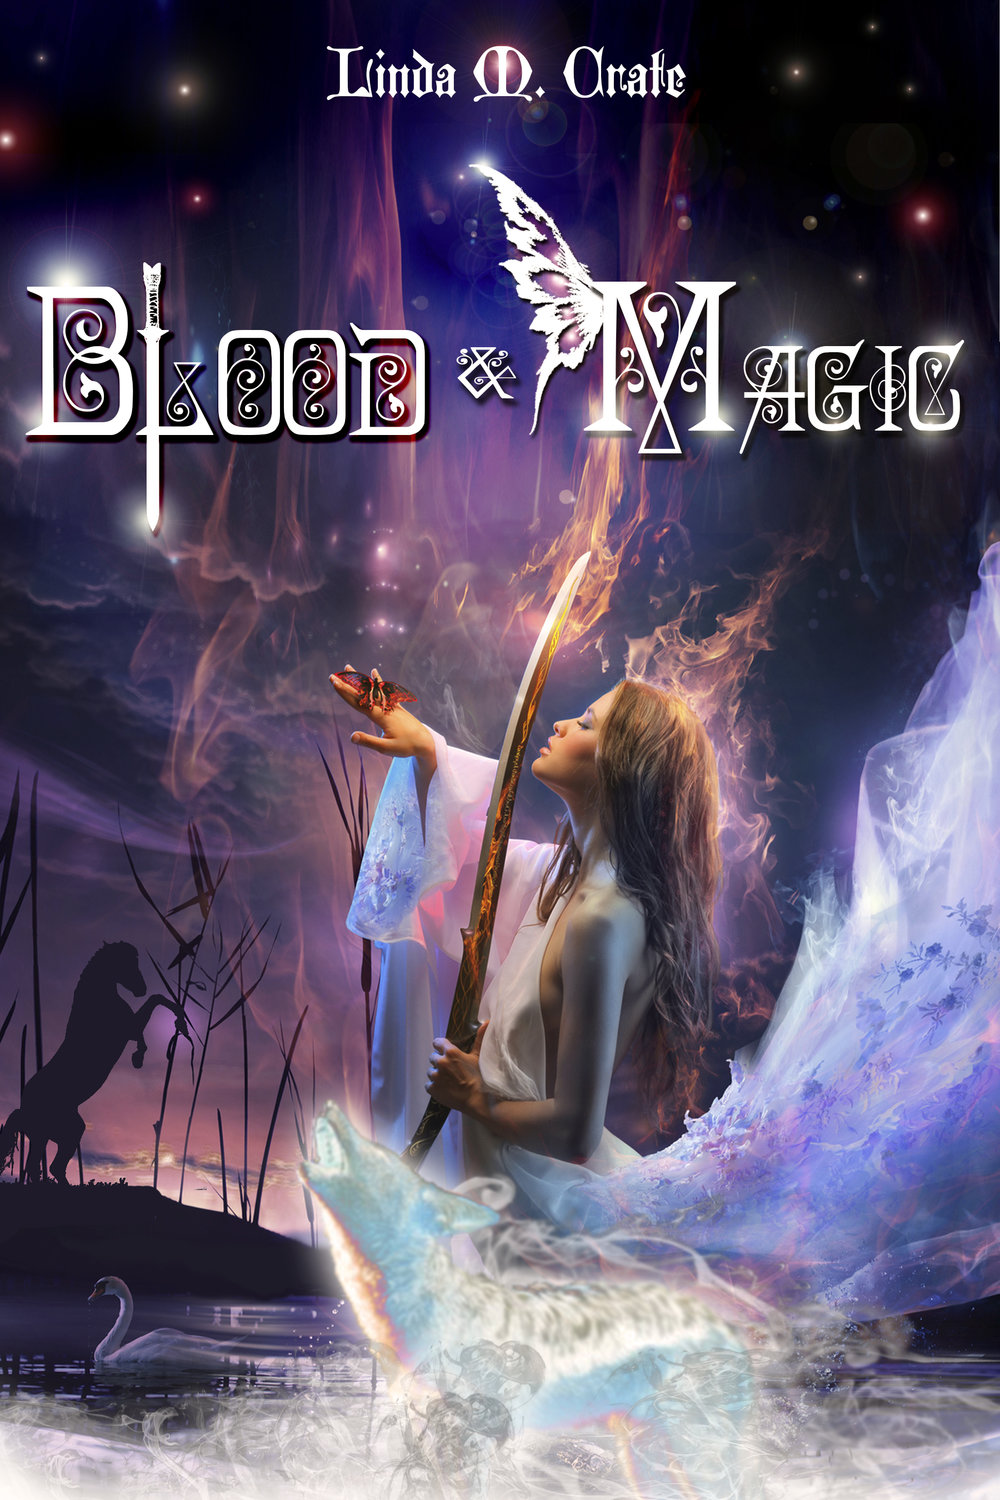 Blood & Magic  by Linda M. Crate, 2015